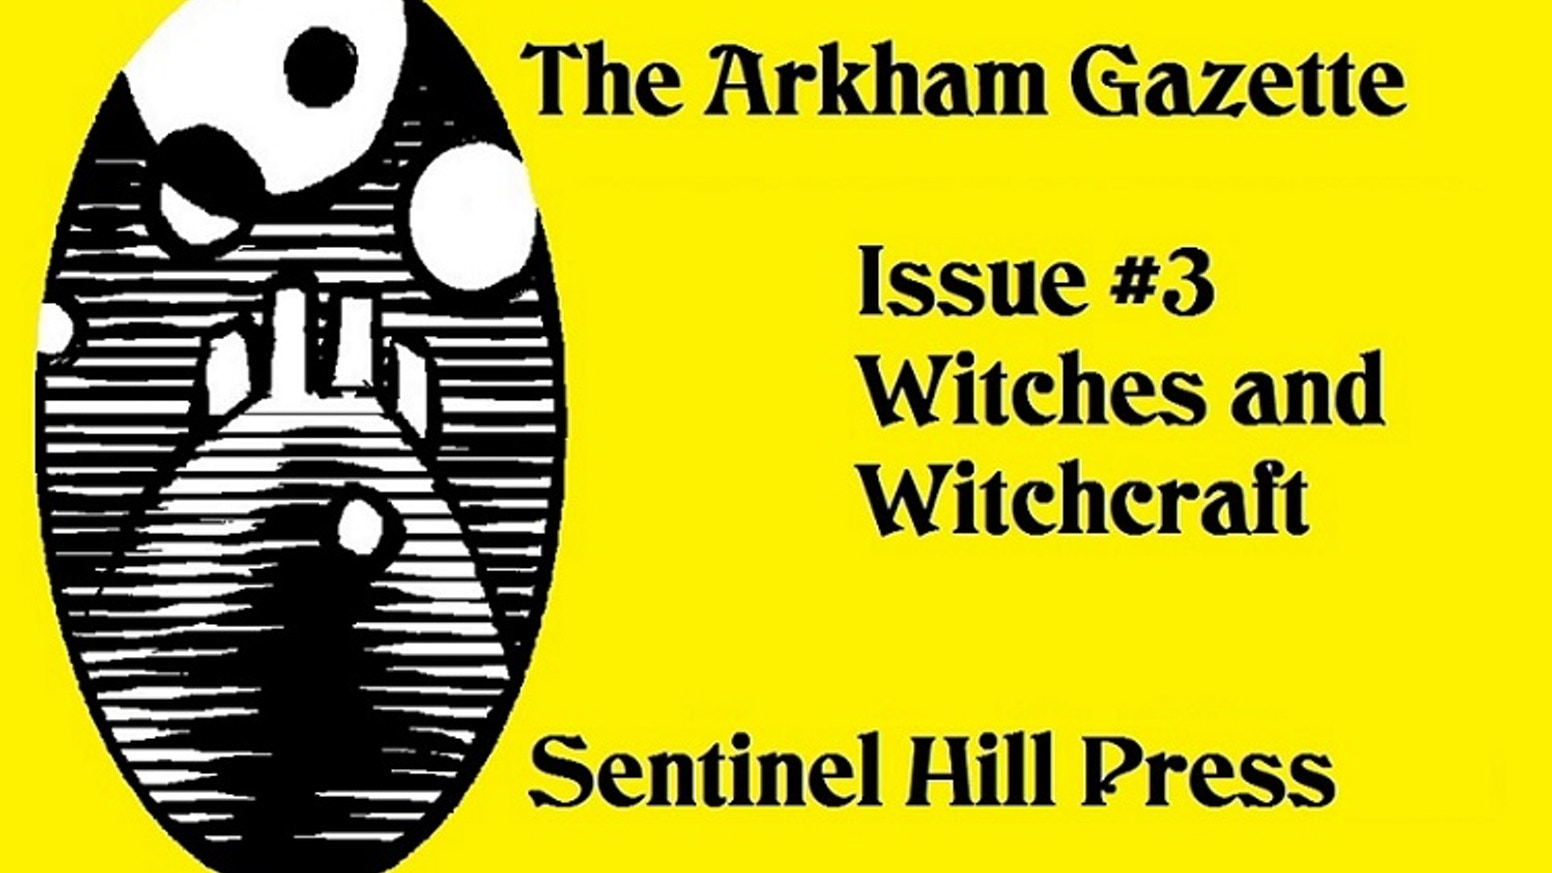 The Arkham Gazette is a magazine for the Lovecraft Country setting of the Call of Cthulhu RPG. We successfully raised funding for issue #3.